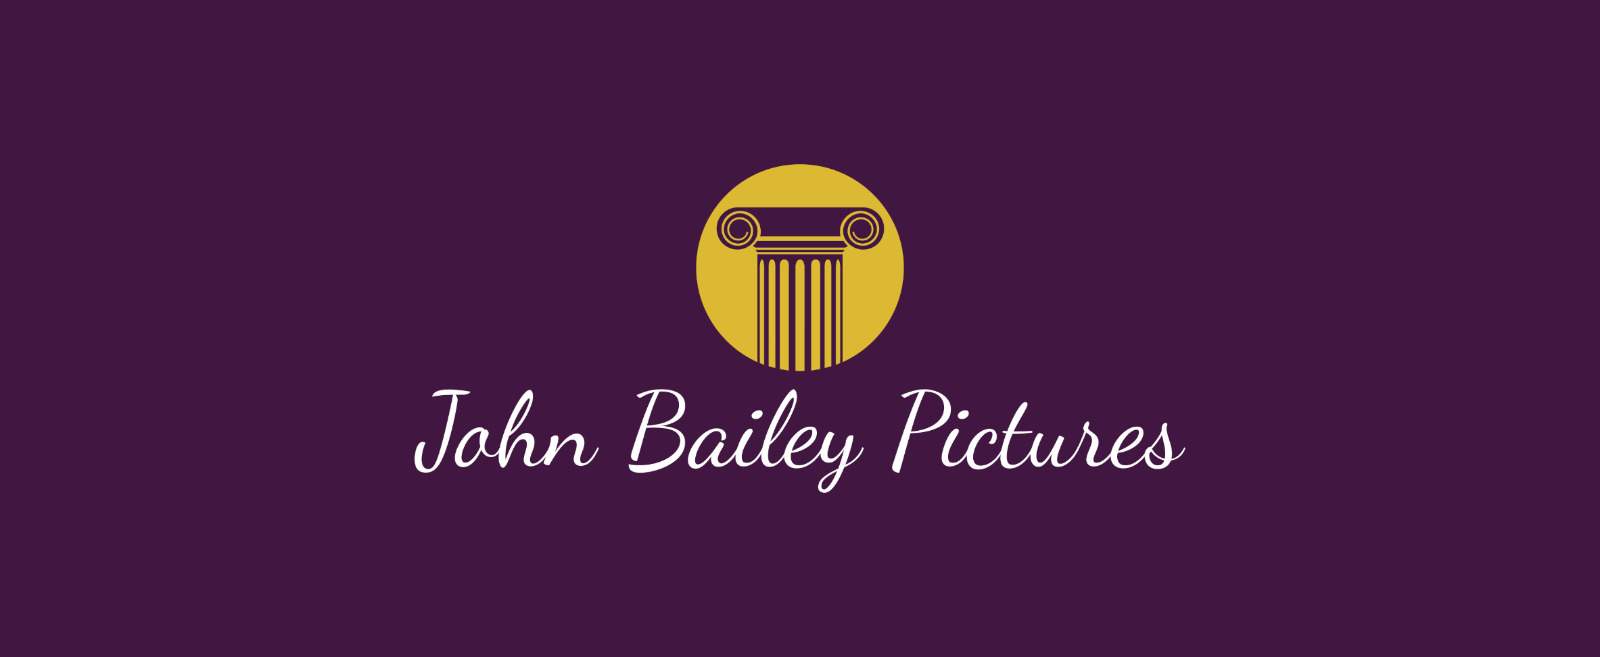 John Bailey Pictures